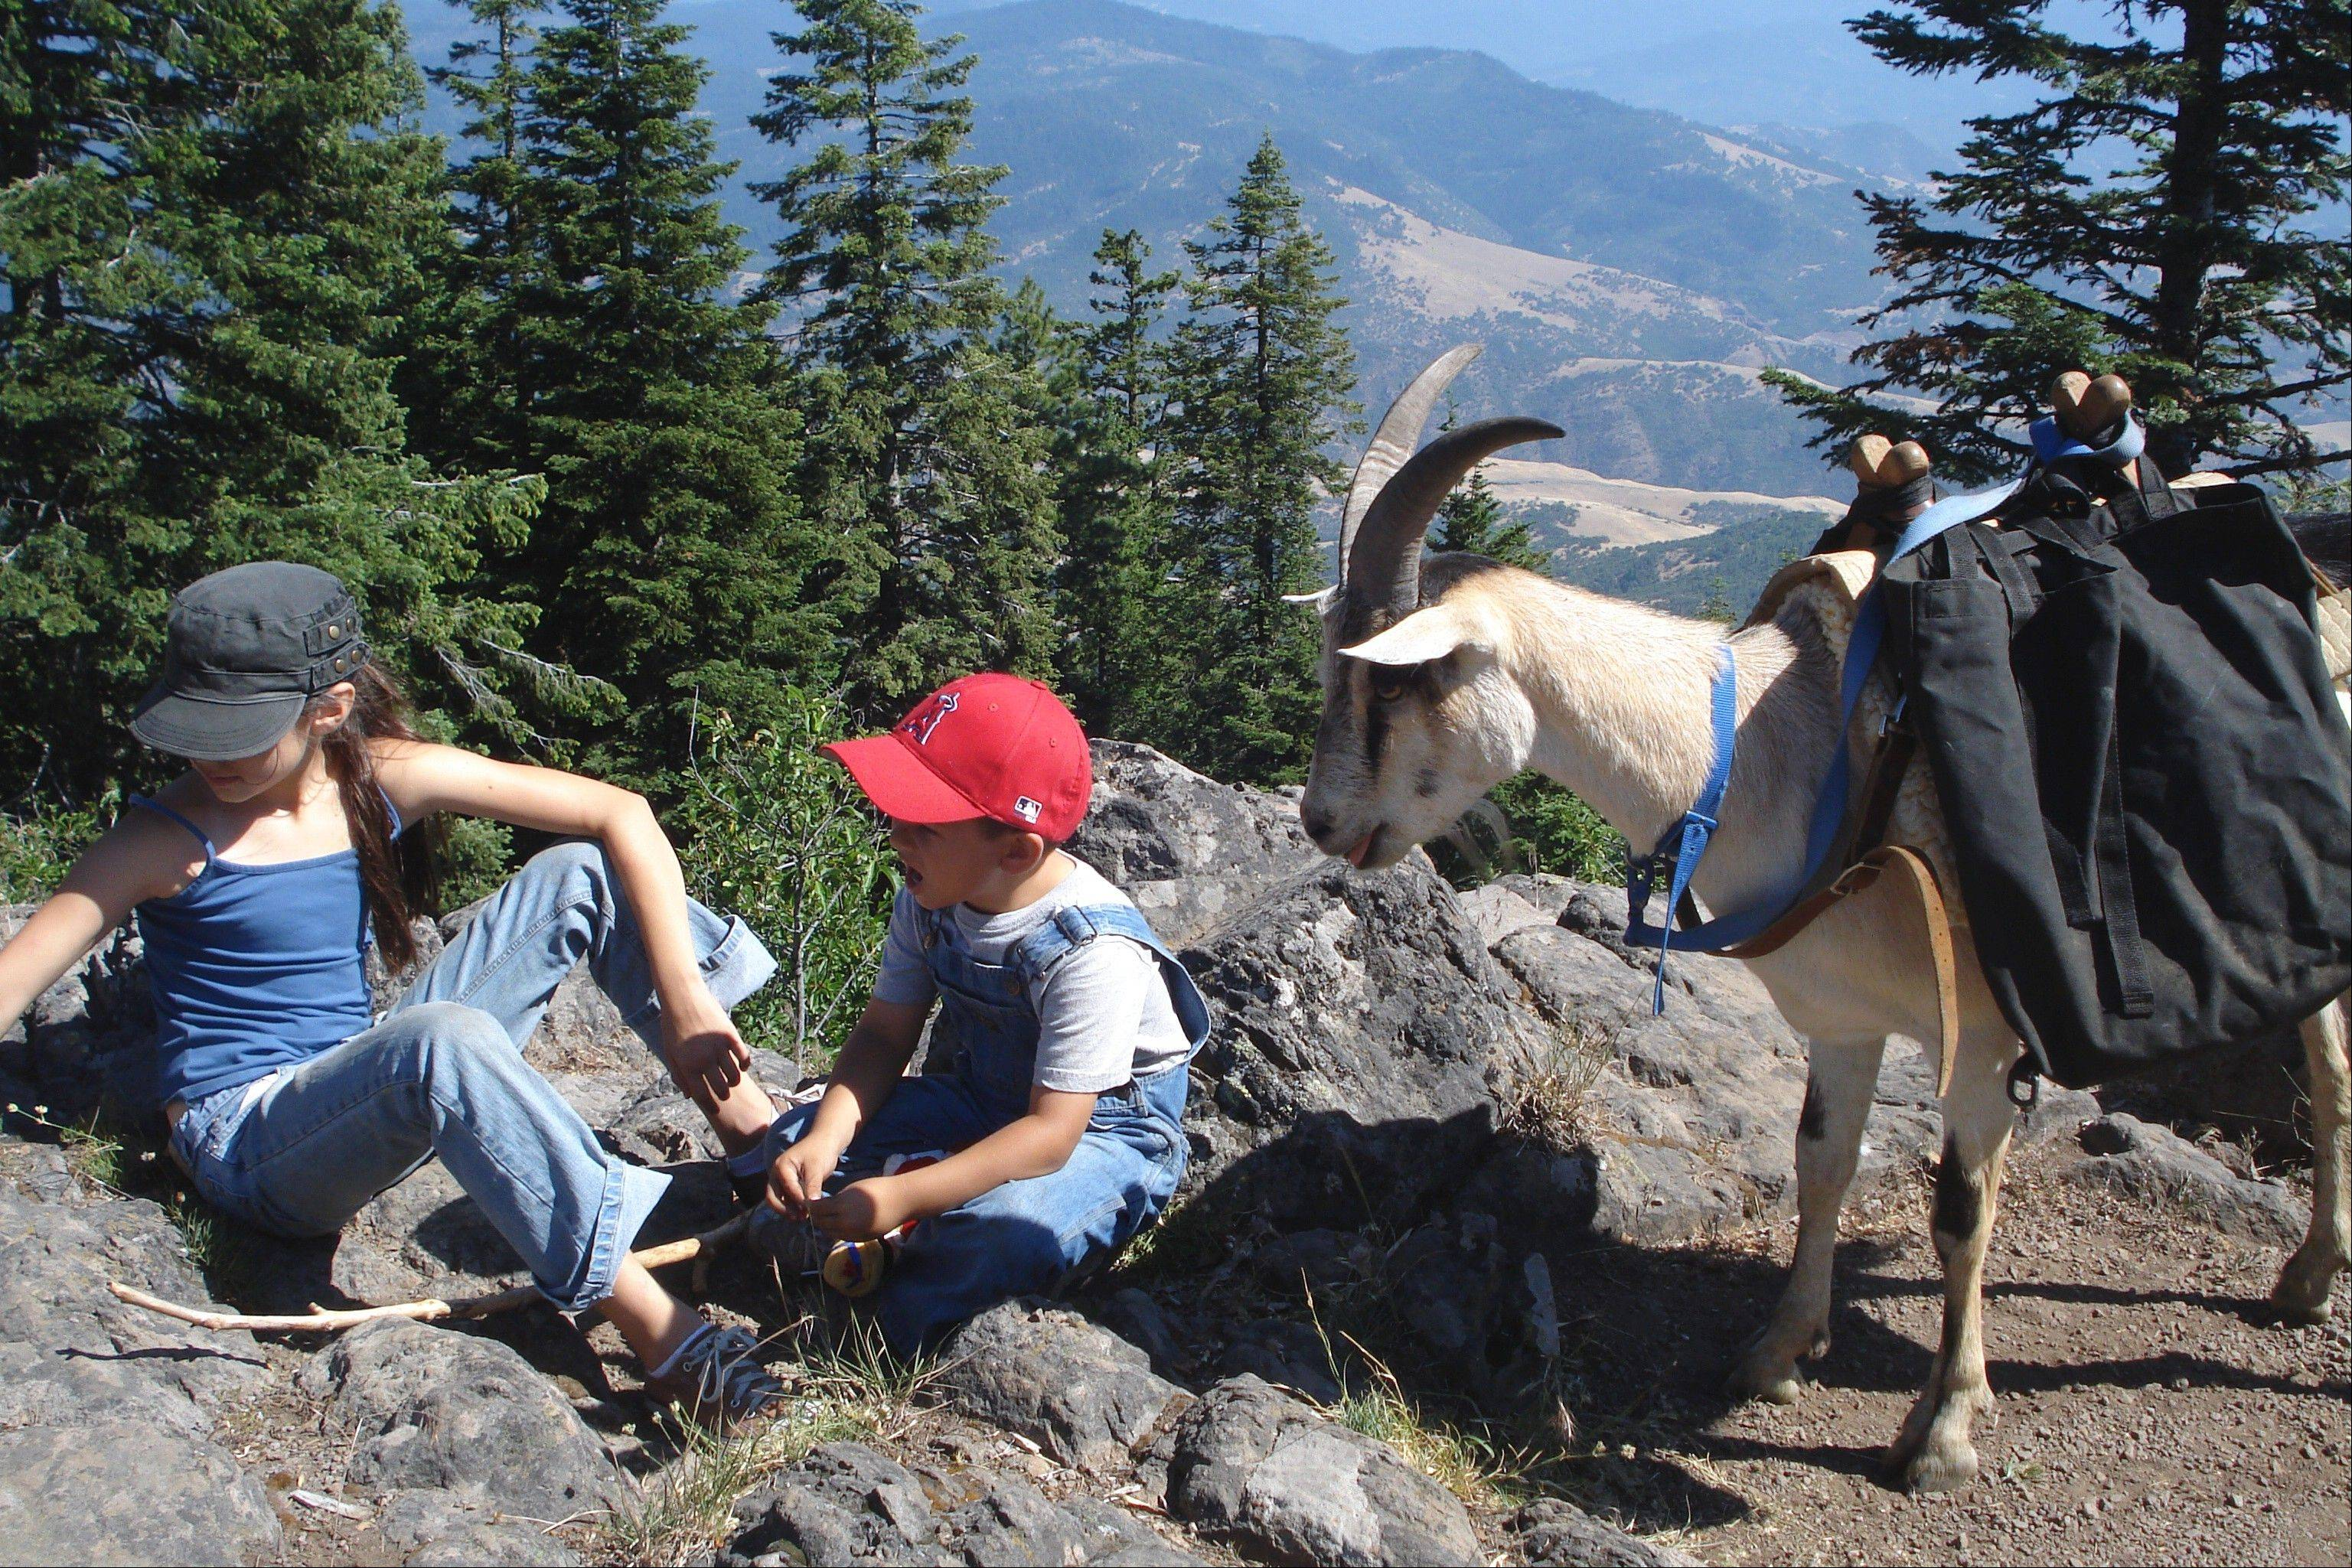 Willow Witt Ranch is located a mile high in the foothills of the Cascades above Ashland, Ore.